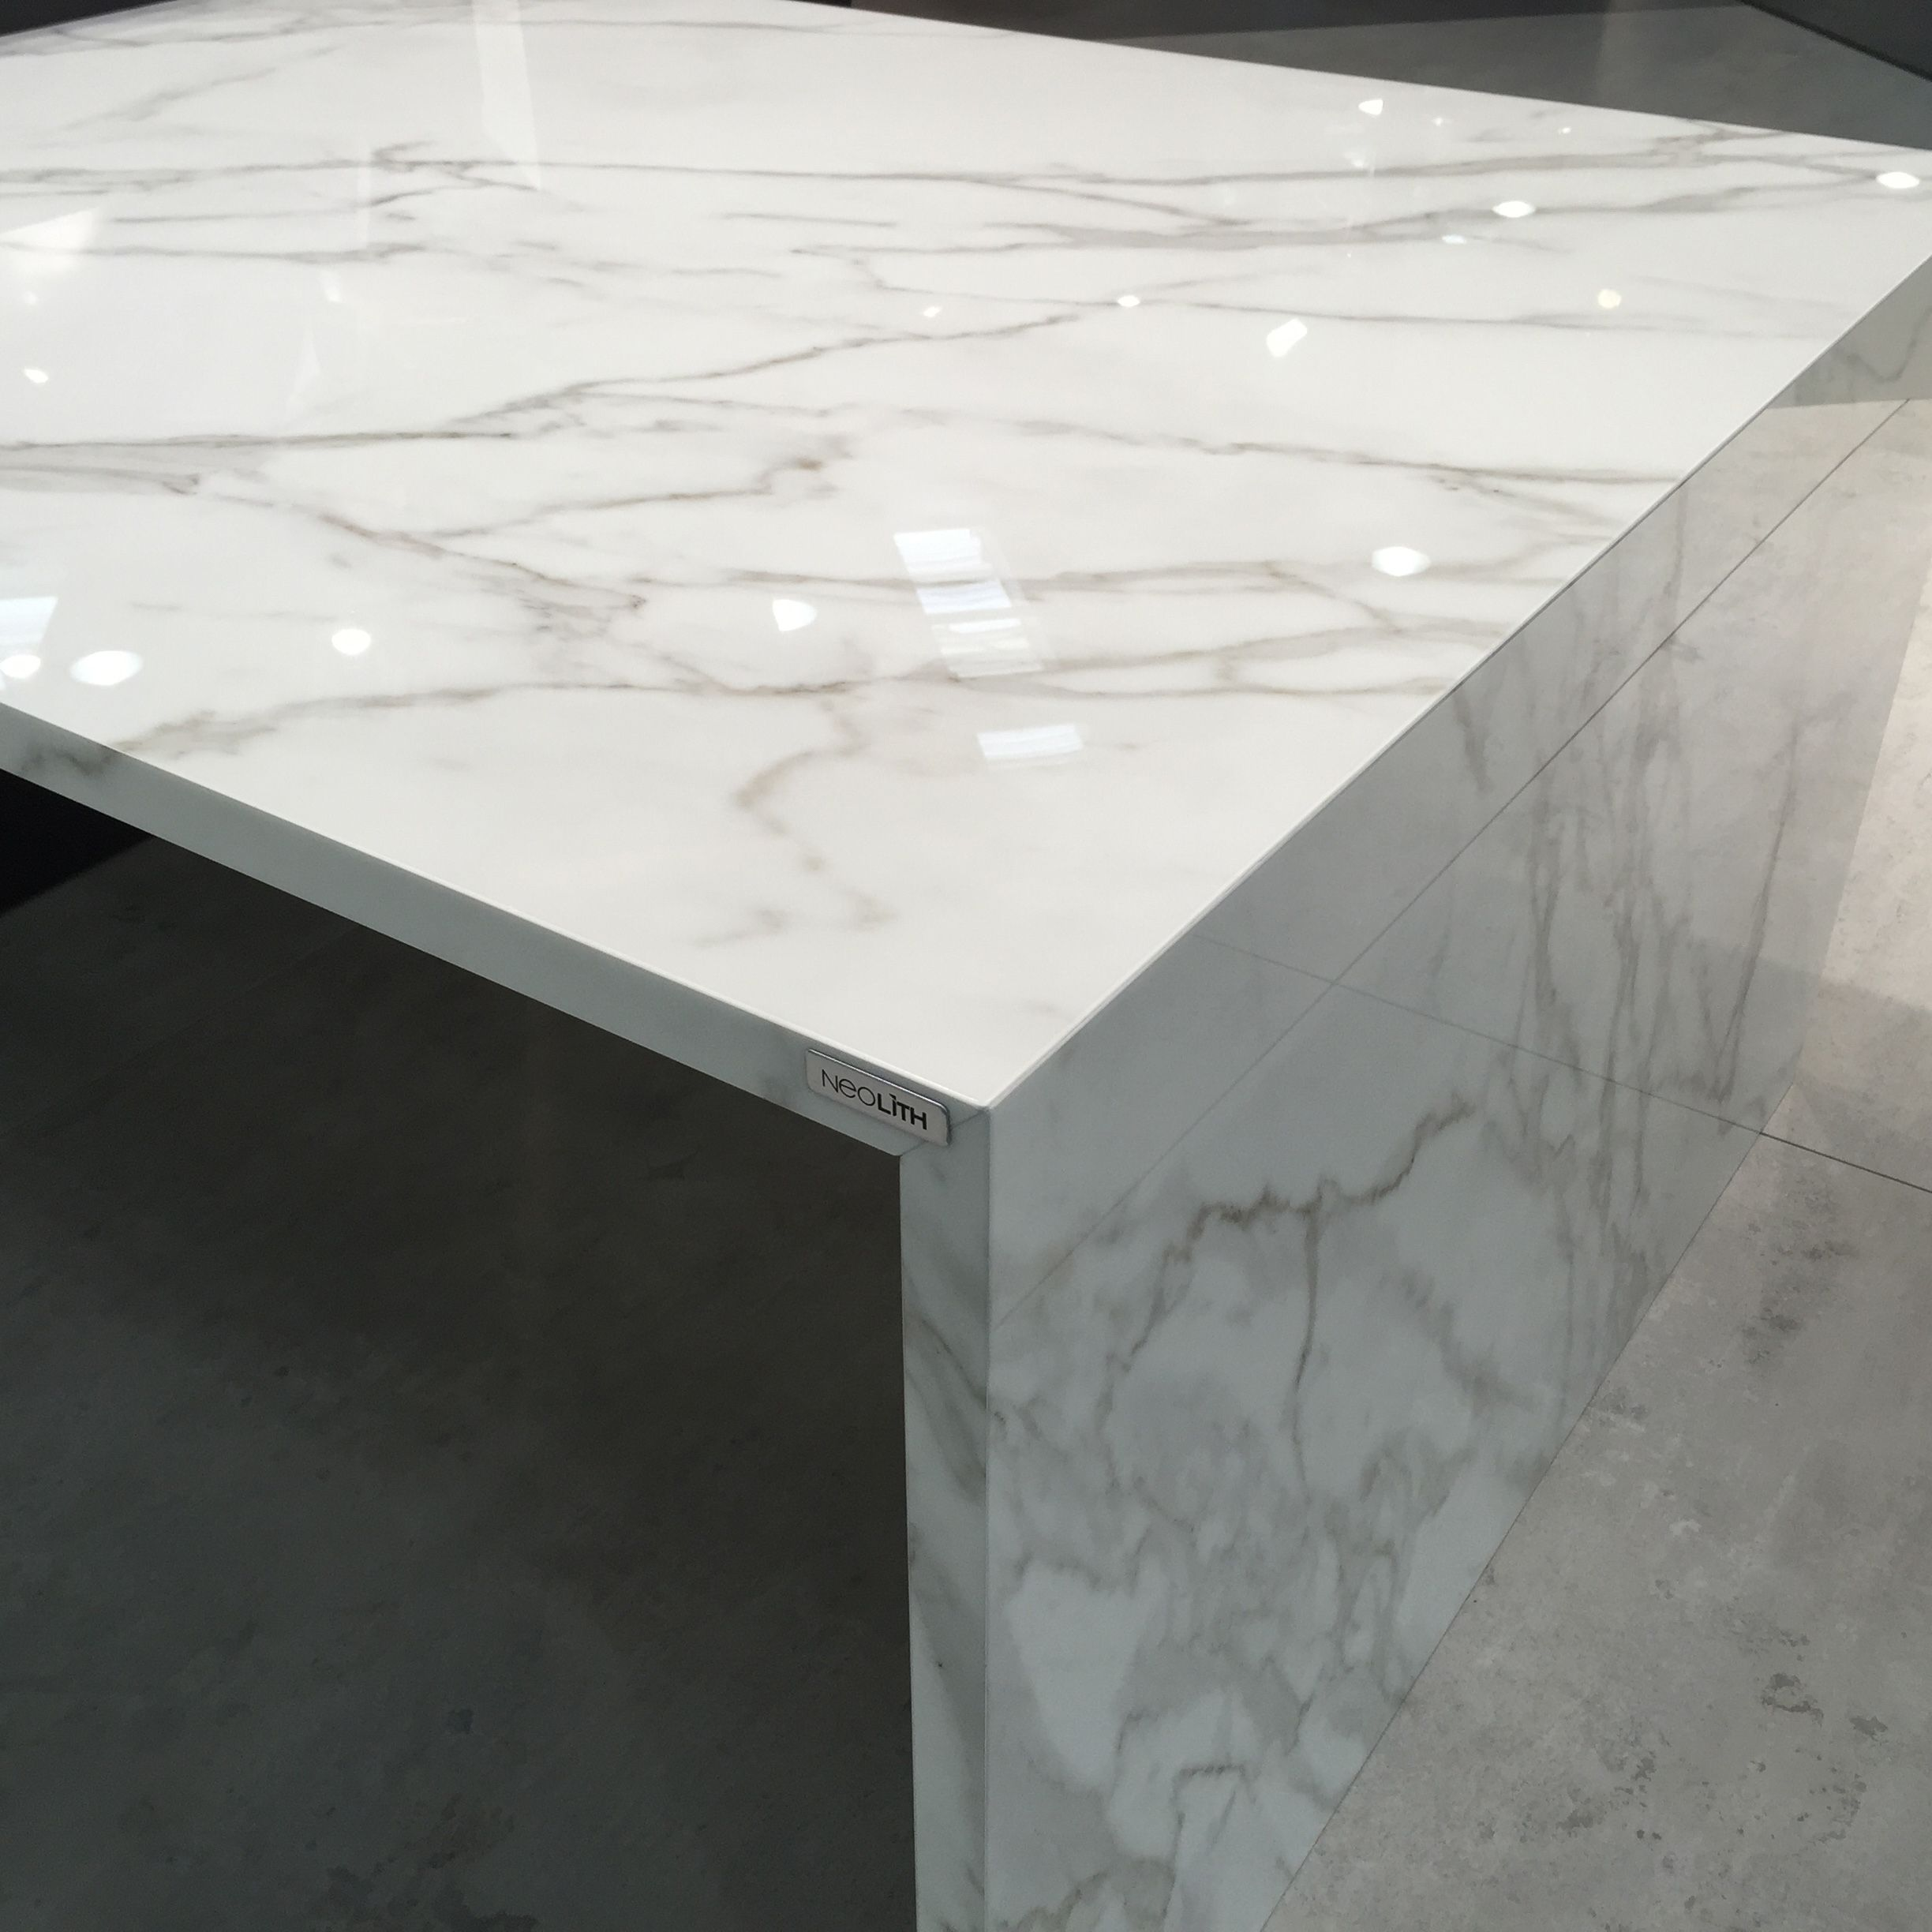 Carrara Marble Kitchen Benchtops: *gasp* An Excellent Calcutta Marble Maintenance Free Alternative! Neolith Calacatta Polished